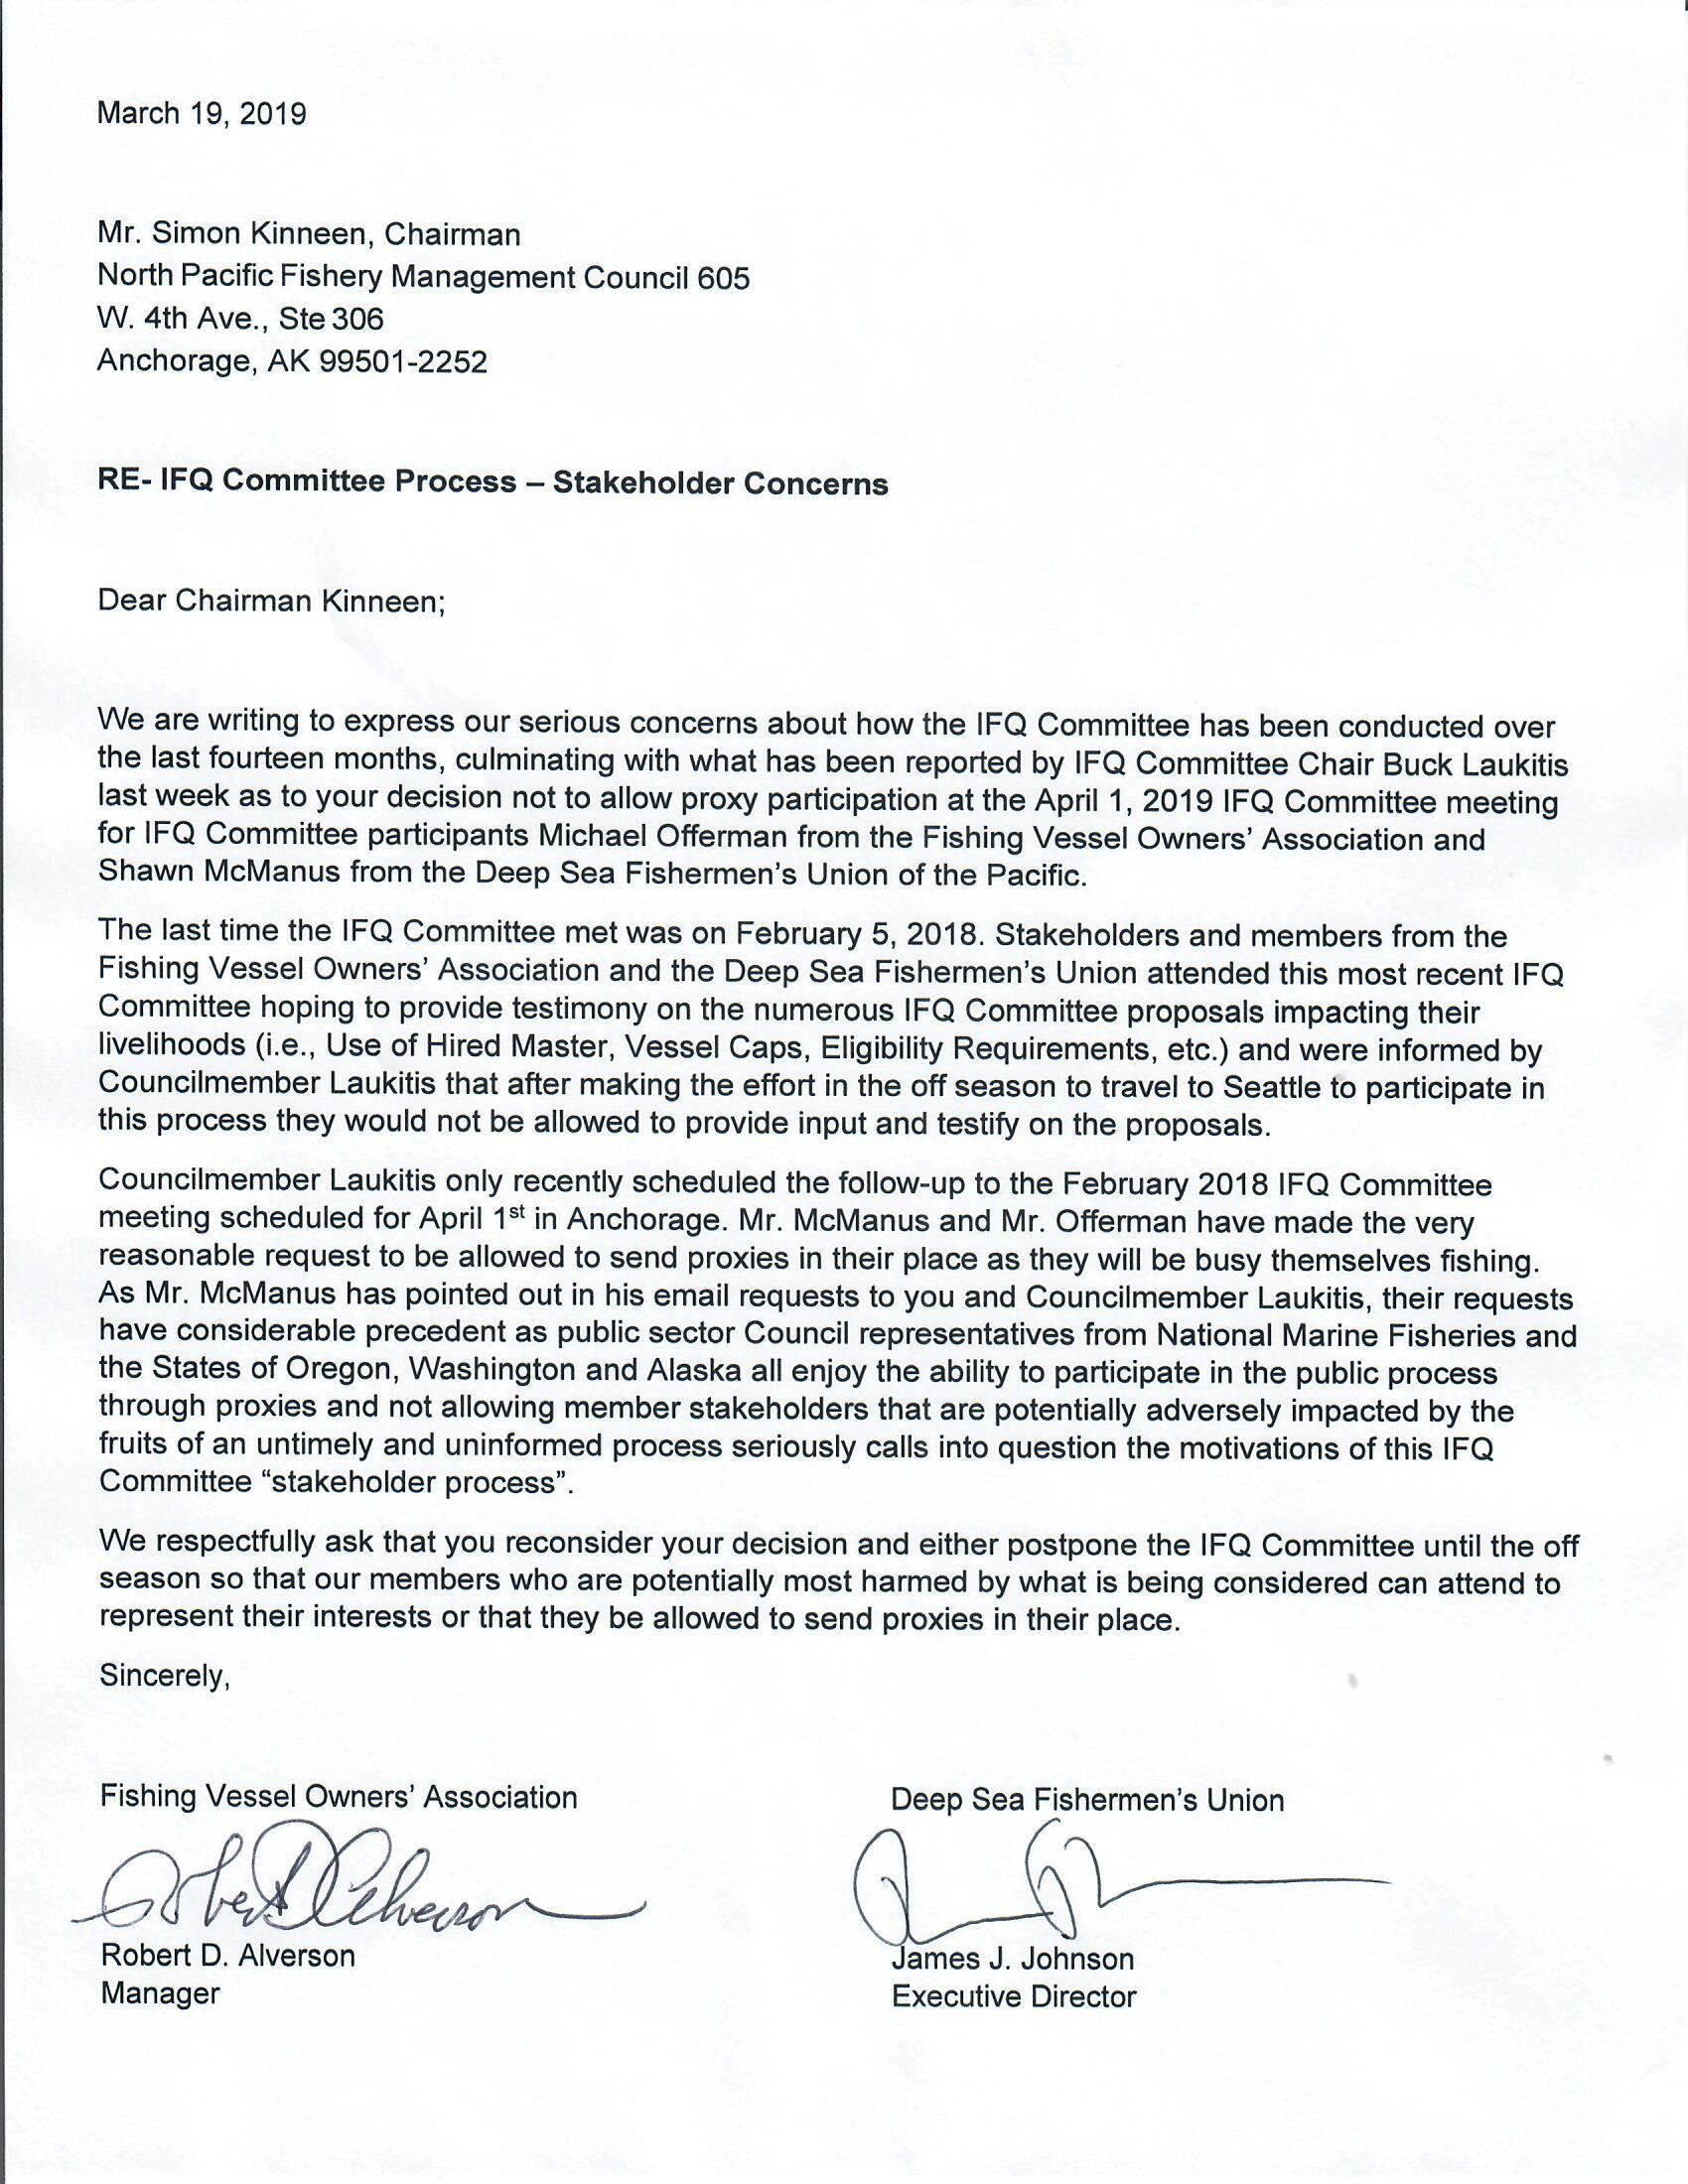 FVOA and DSFU IFQ Committee Report Letter to Kinnen March 13, 2019 Signature Copy.jpg